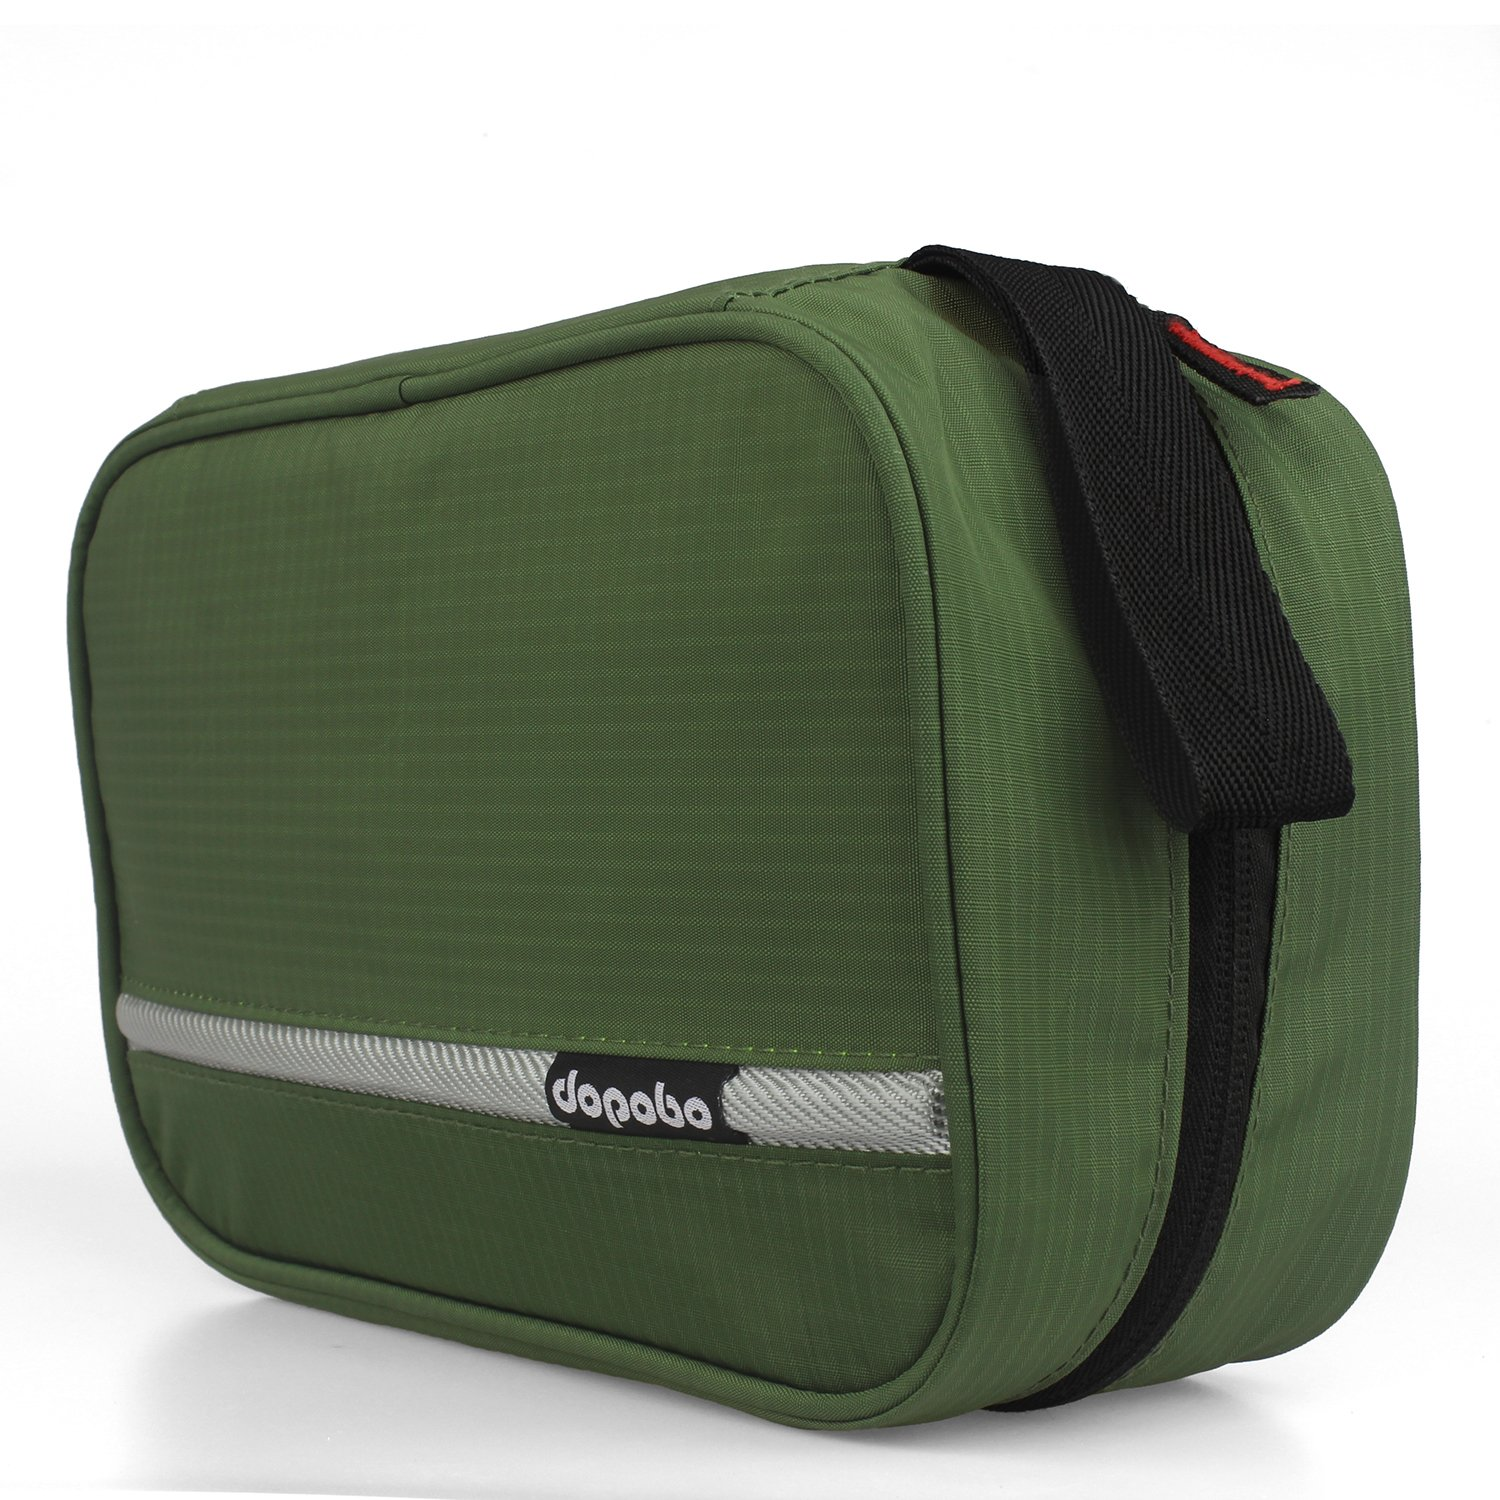 Dopobo Travelling Toiletry Bag Portable Hanging Water-Resistant Wash Bag for Travelling, Business Trip, Camping (army green) by Dopobo (Image #3)